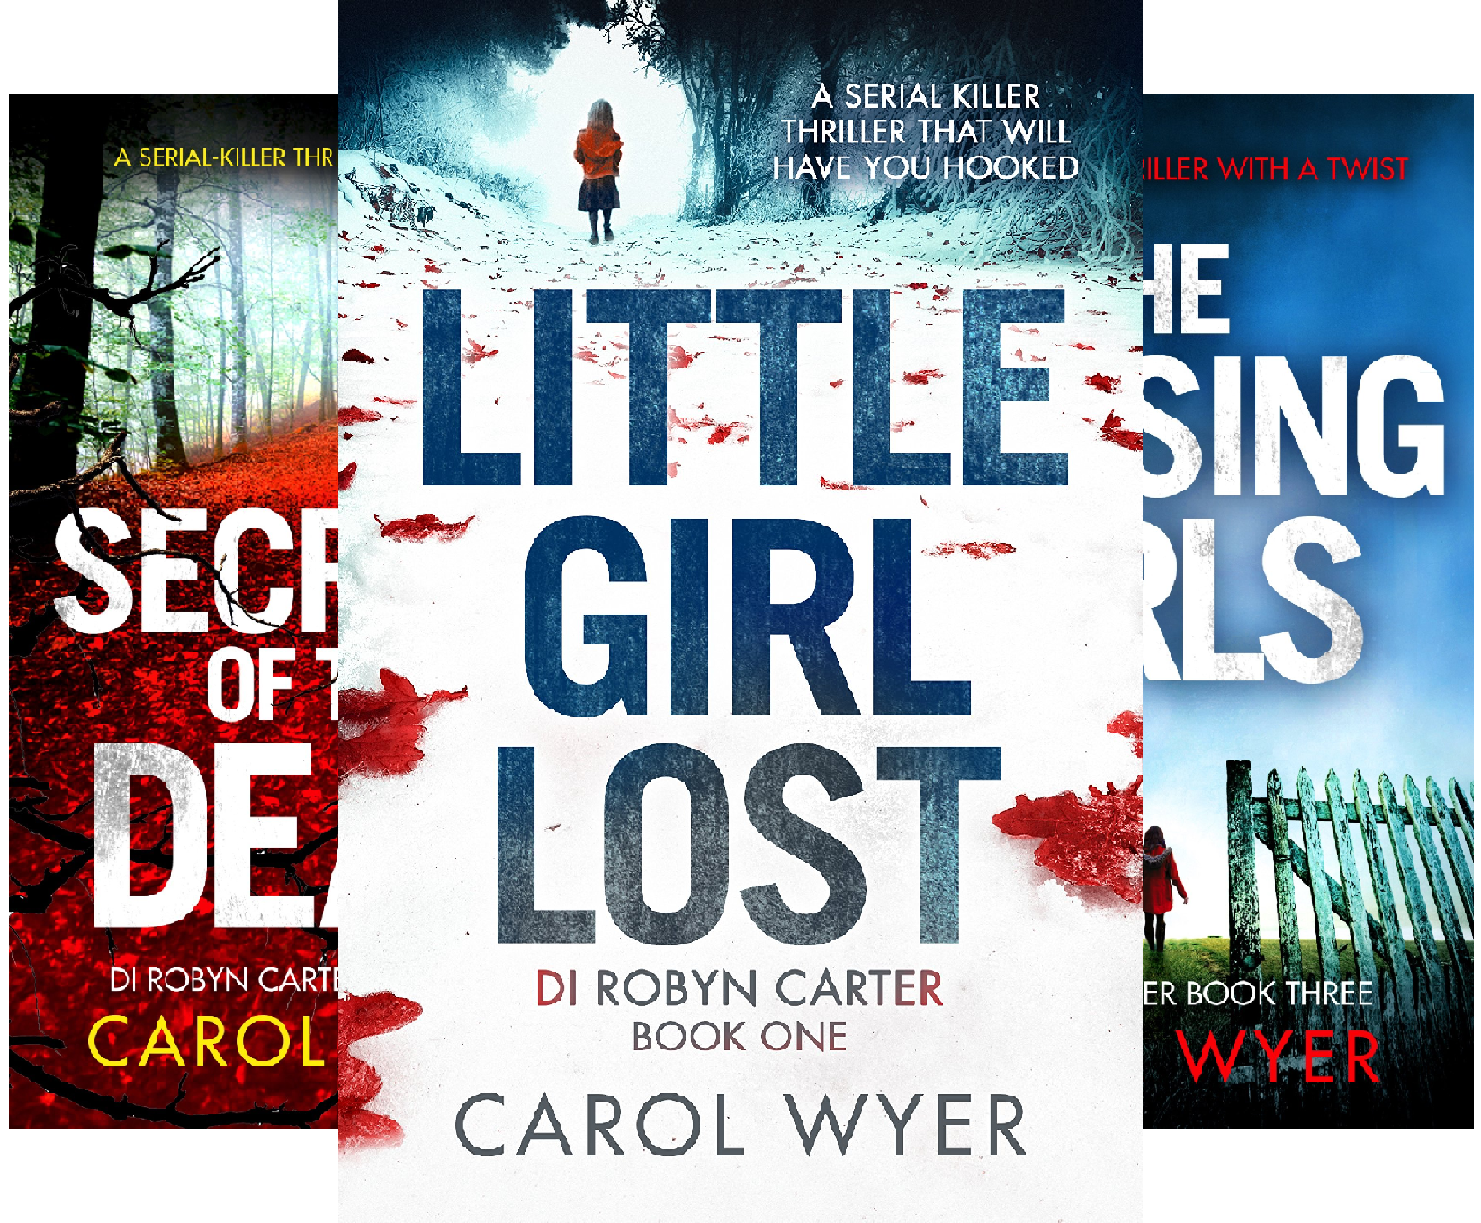 Detective robyn carter series buyer's guide